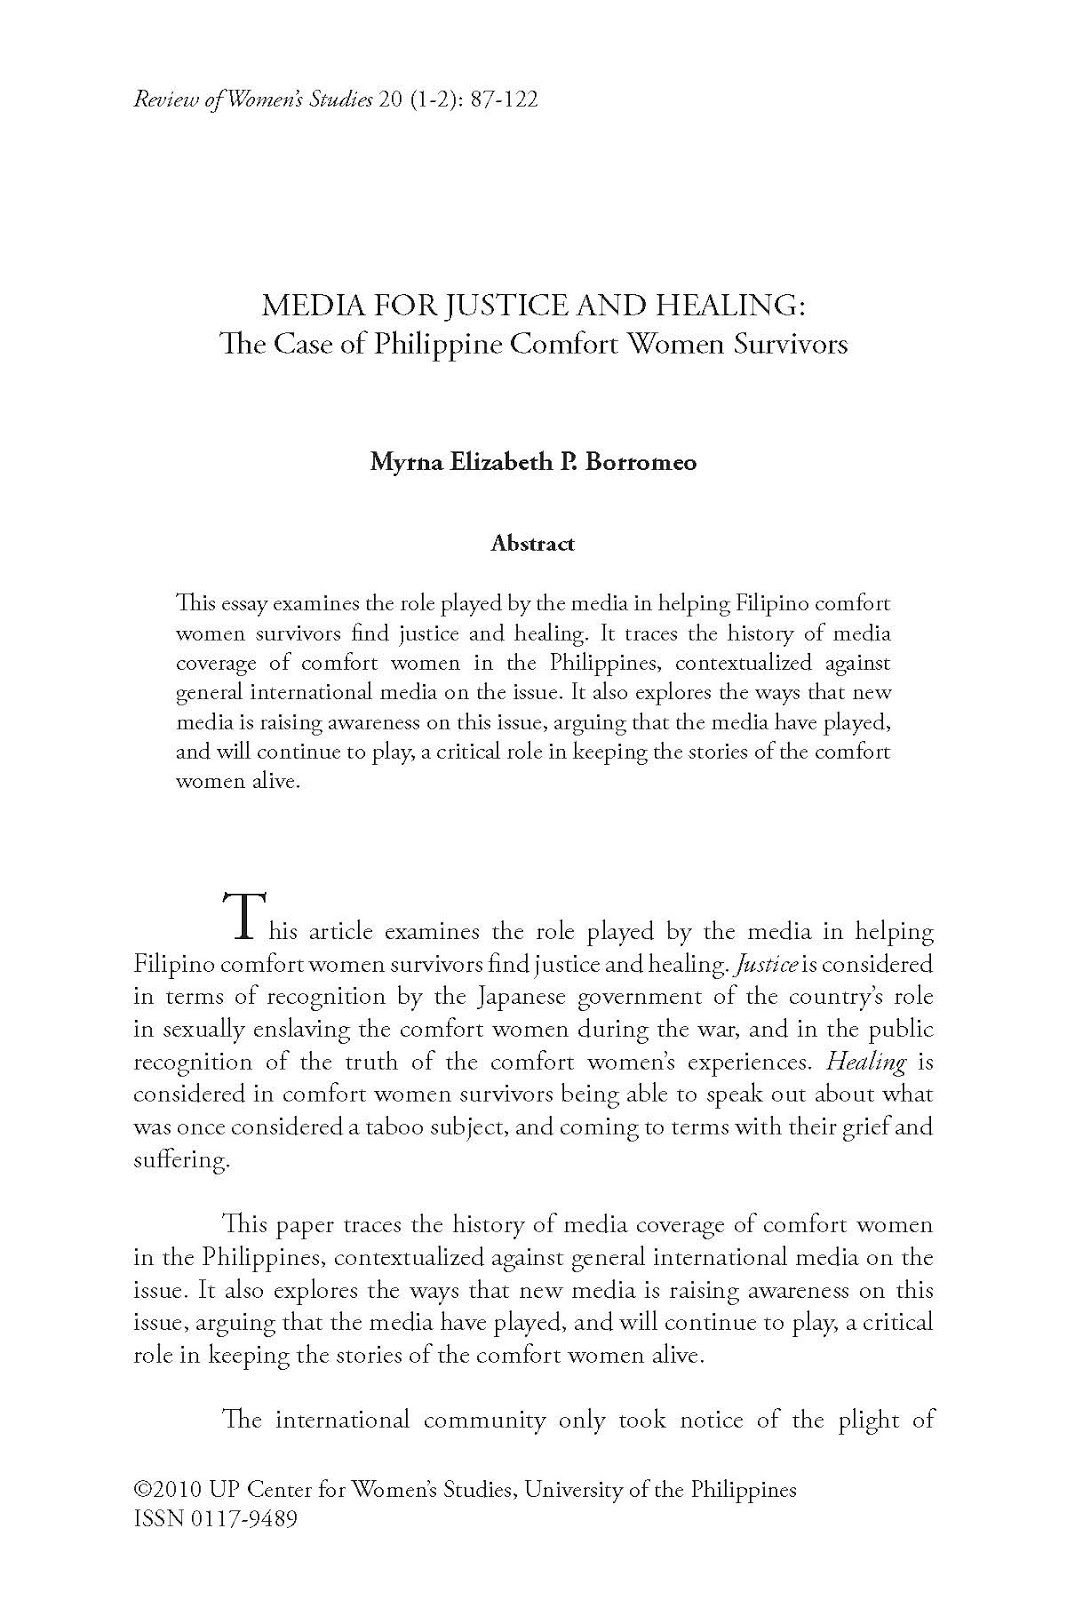 mochi thinking edia for justice and healing the case of during world war ii new york columbia university press 2000 yu jose lydia and palanca tan rosalina eds and directions and